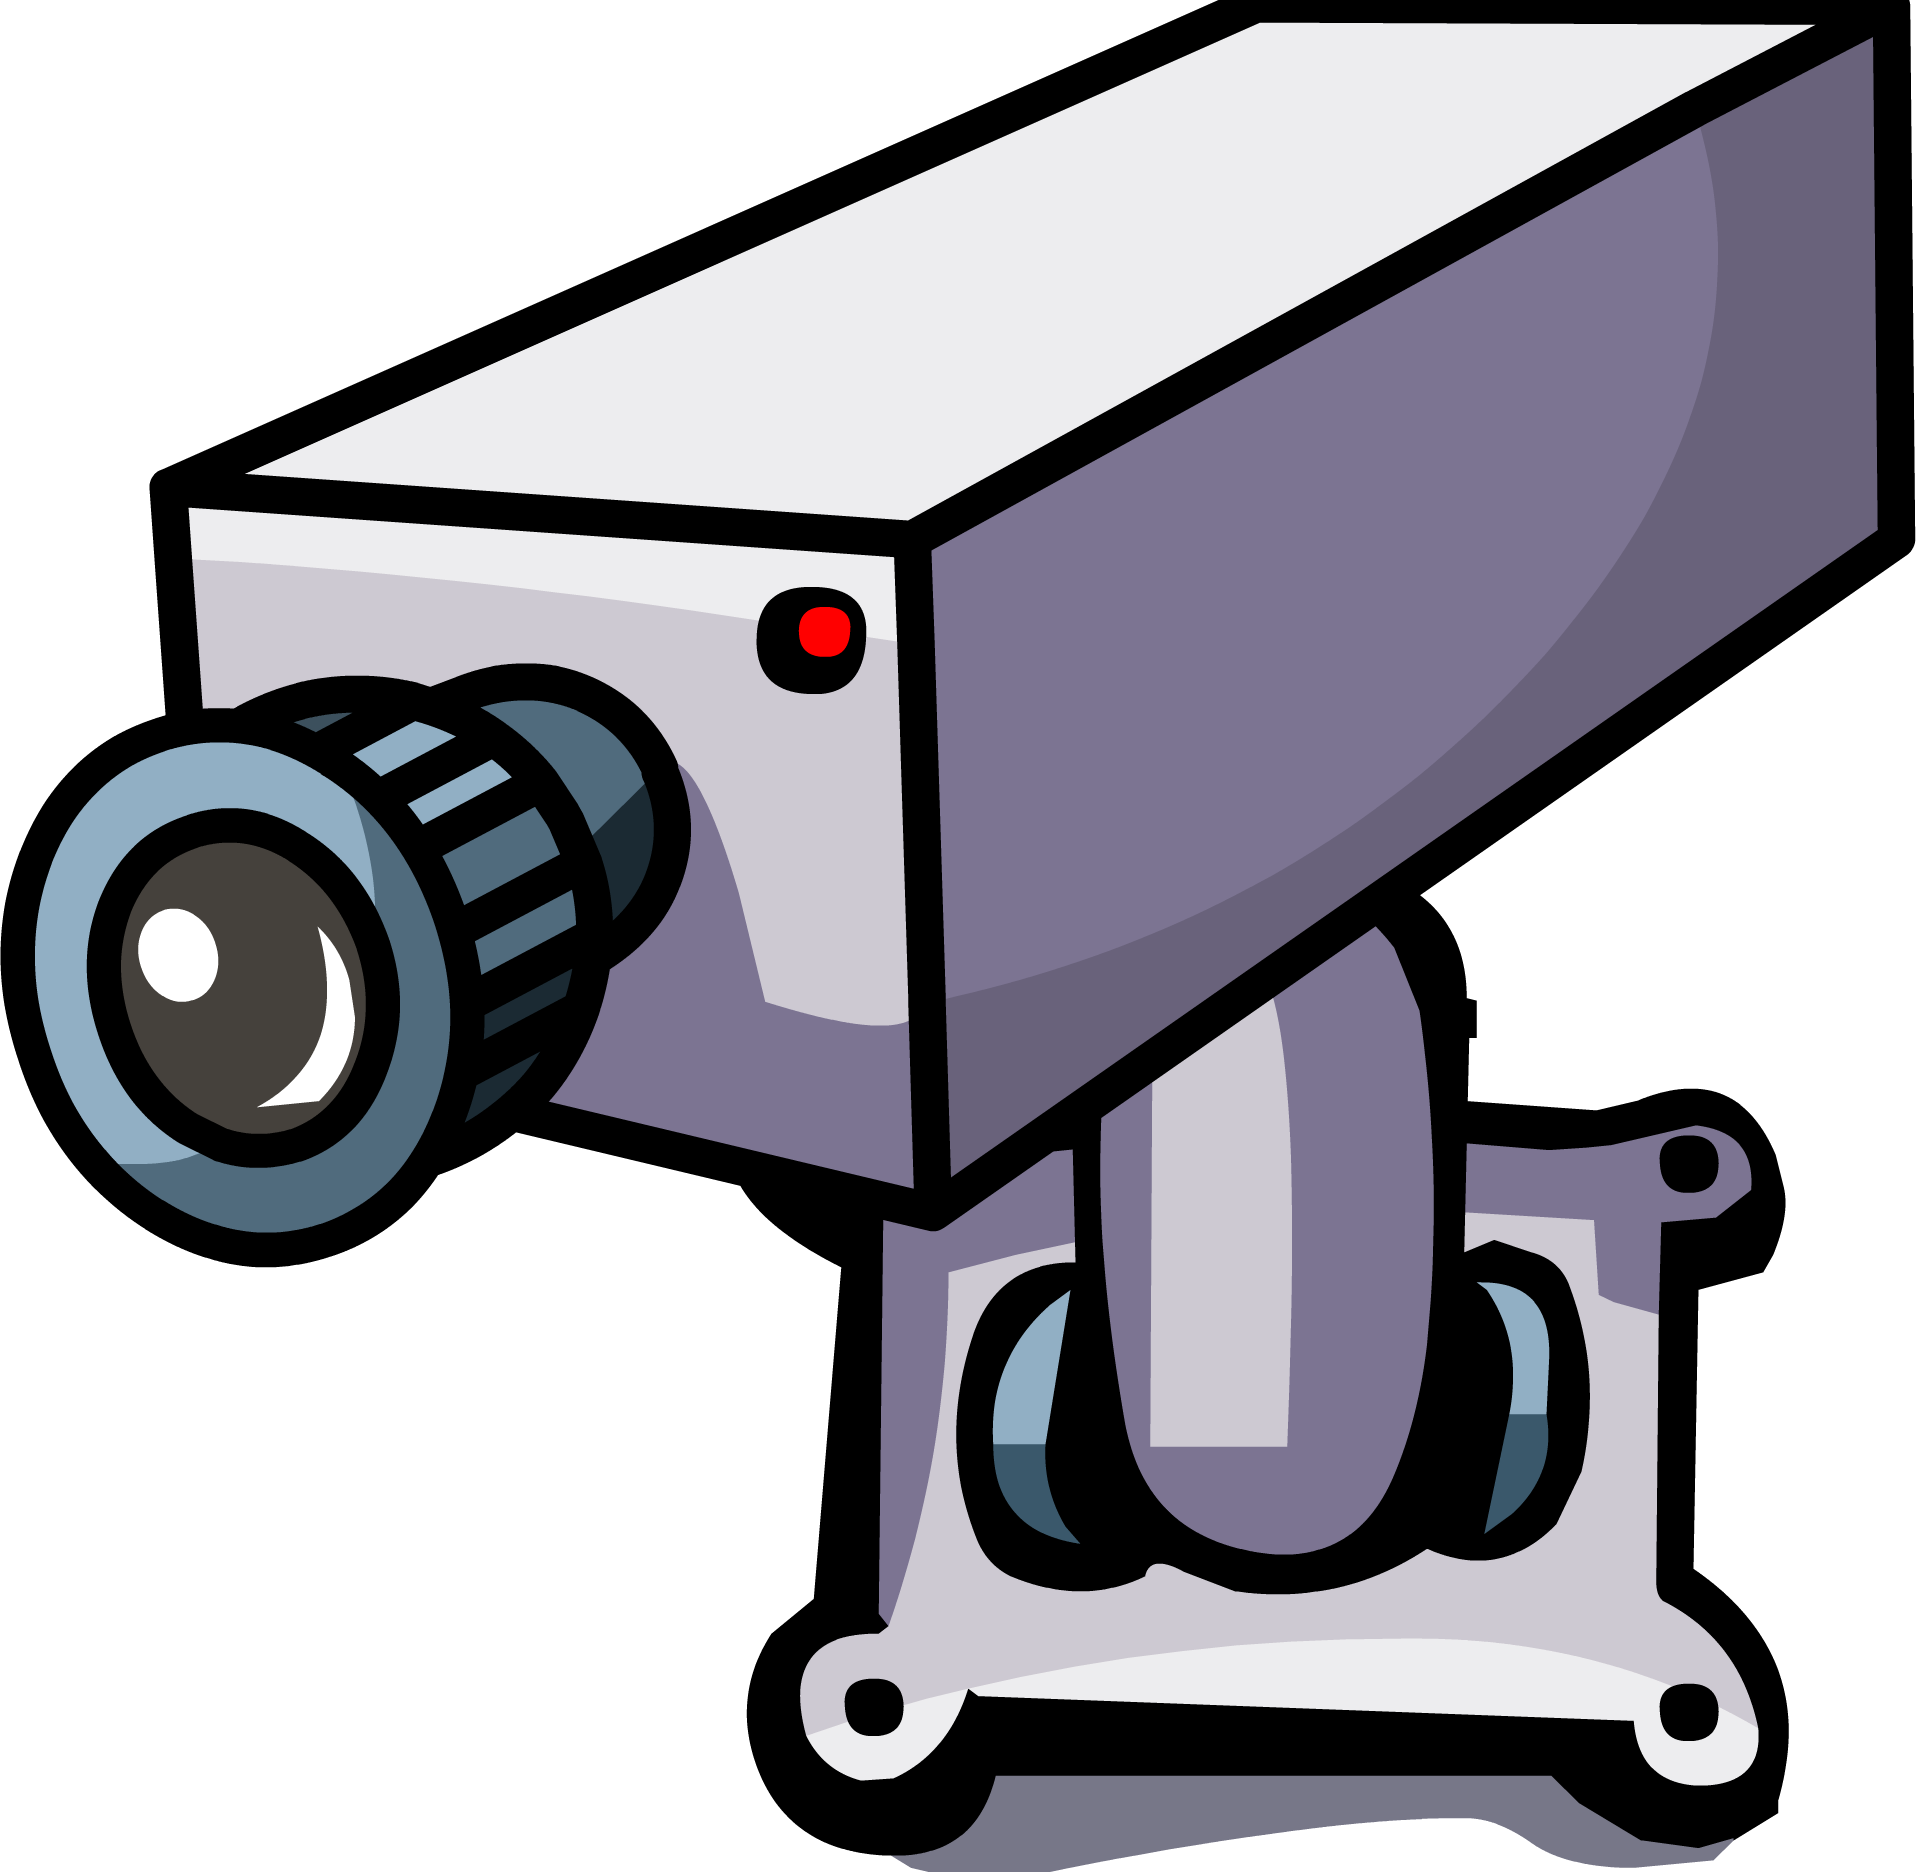 Camera clipart security camera. What makes a good